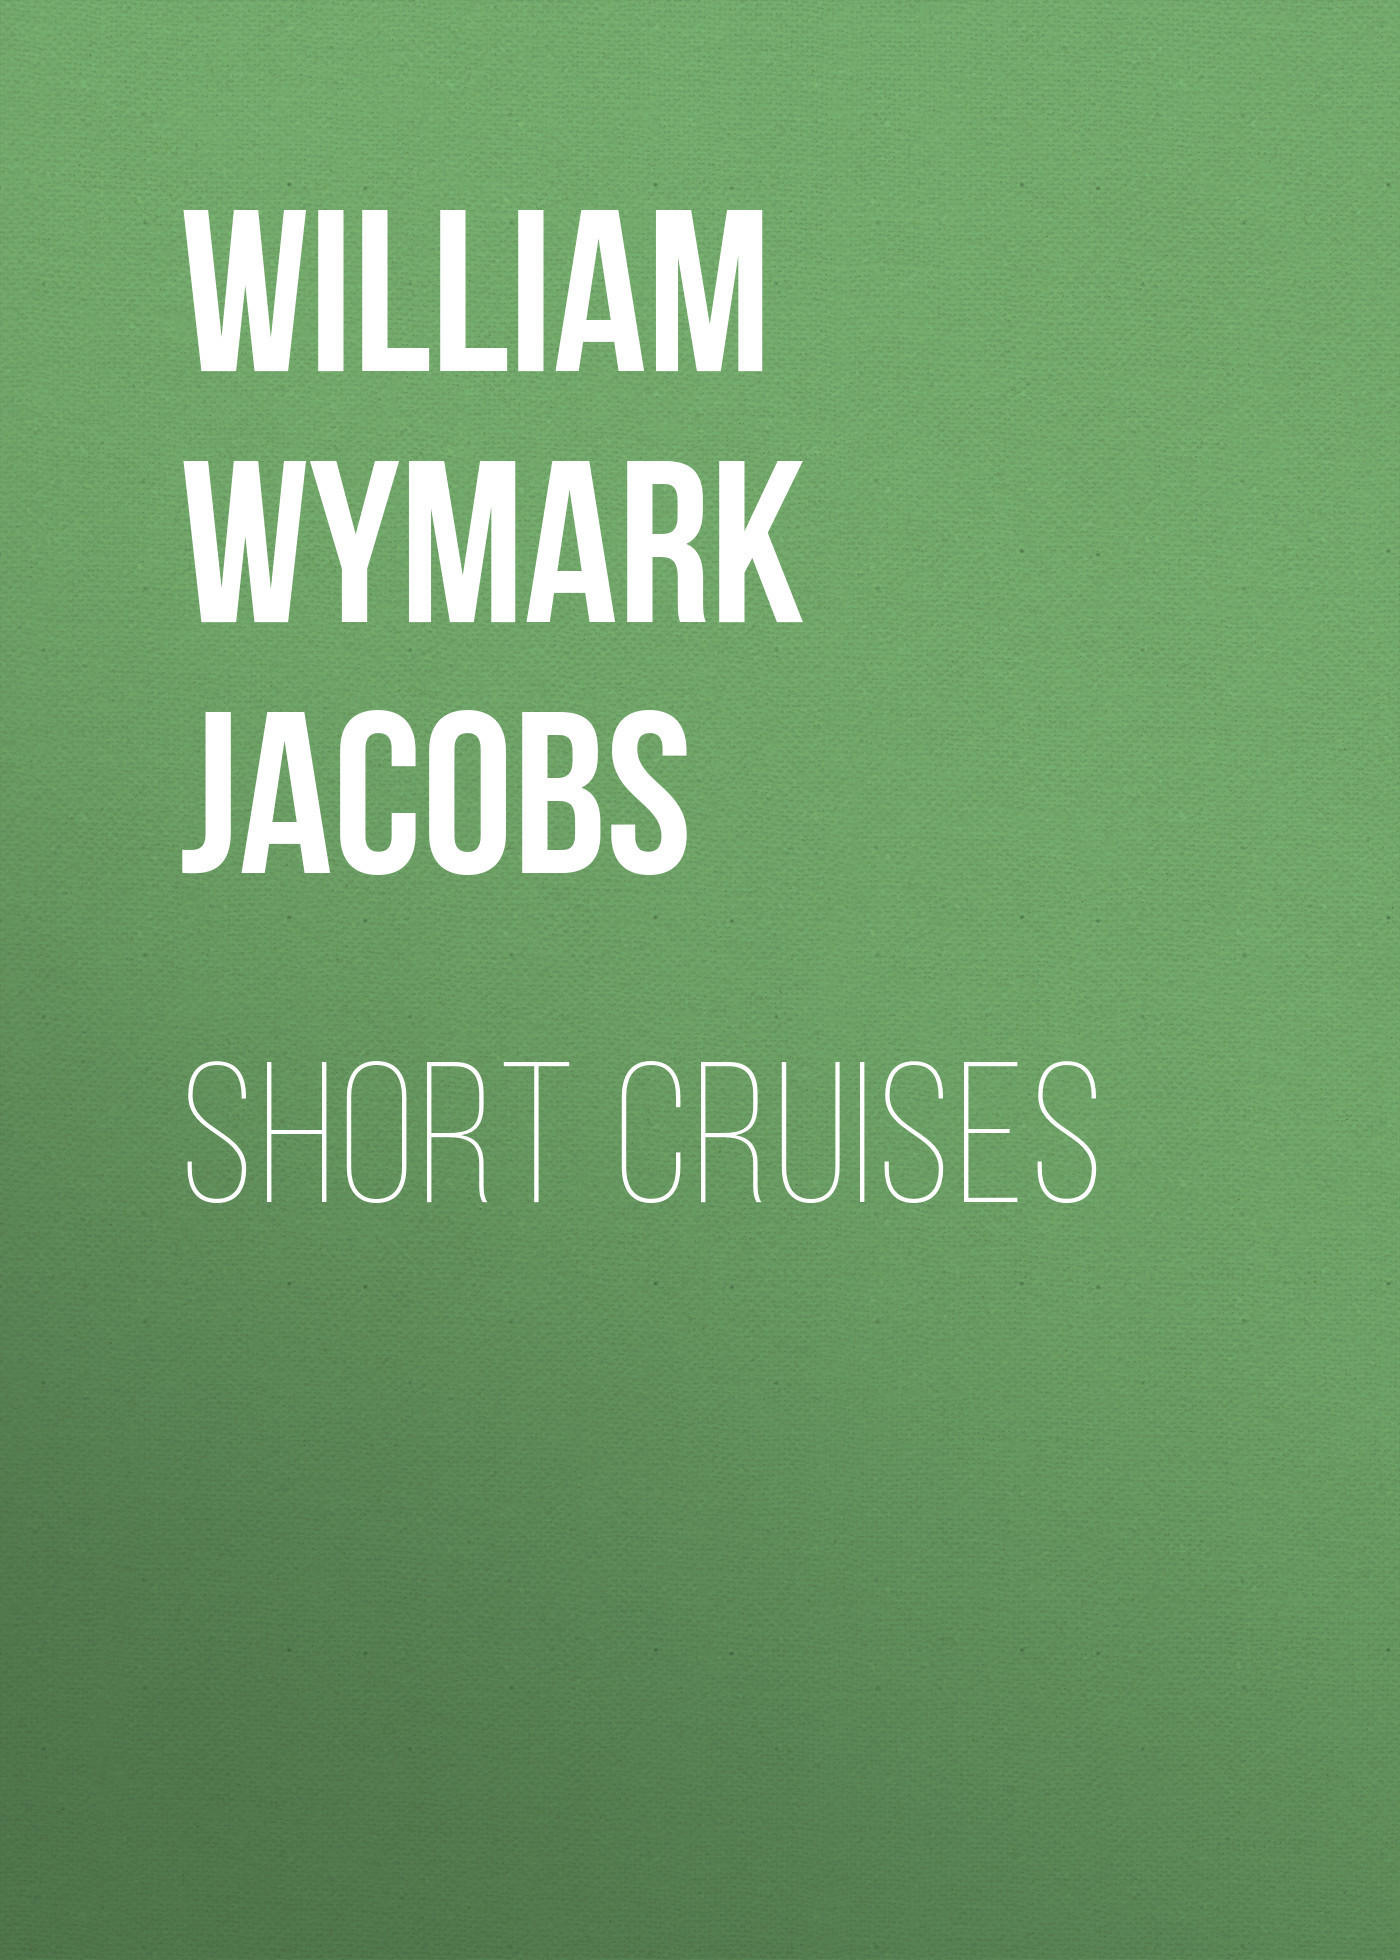 William Wymark Jacobs Short Cruises ford r the essential tales of chekhov